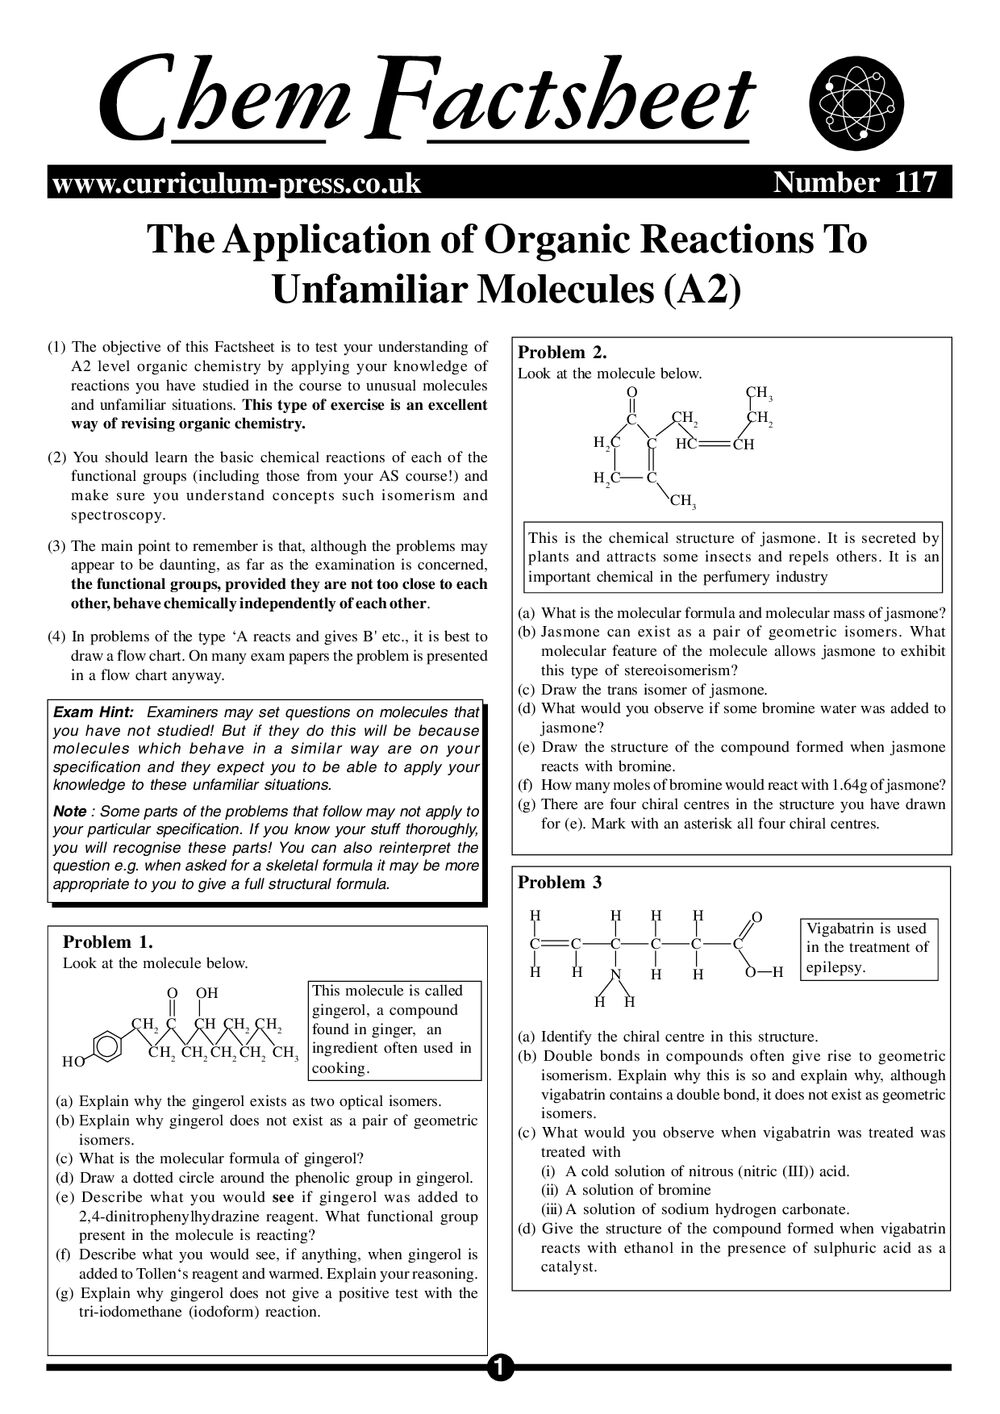 The Application of Organic Reactions to Unfamiliar Molecules